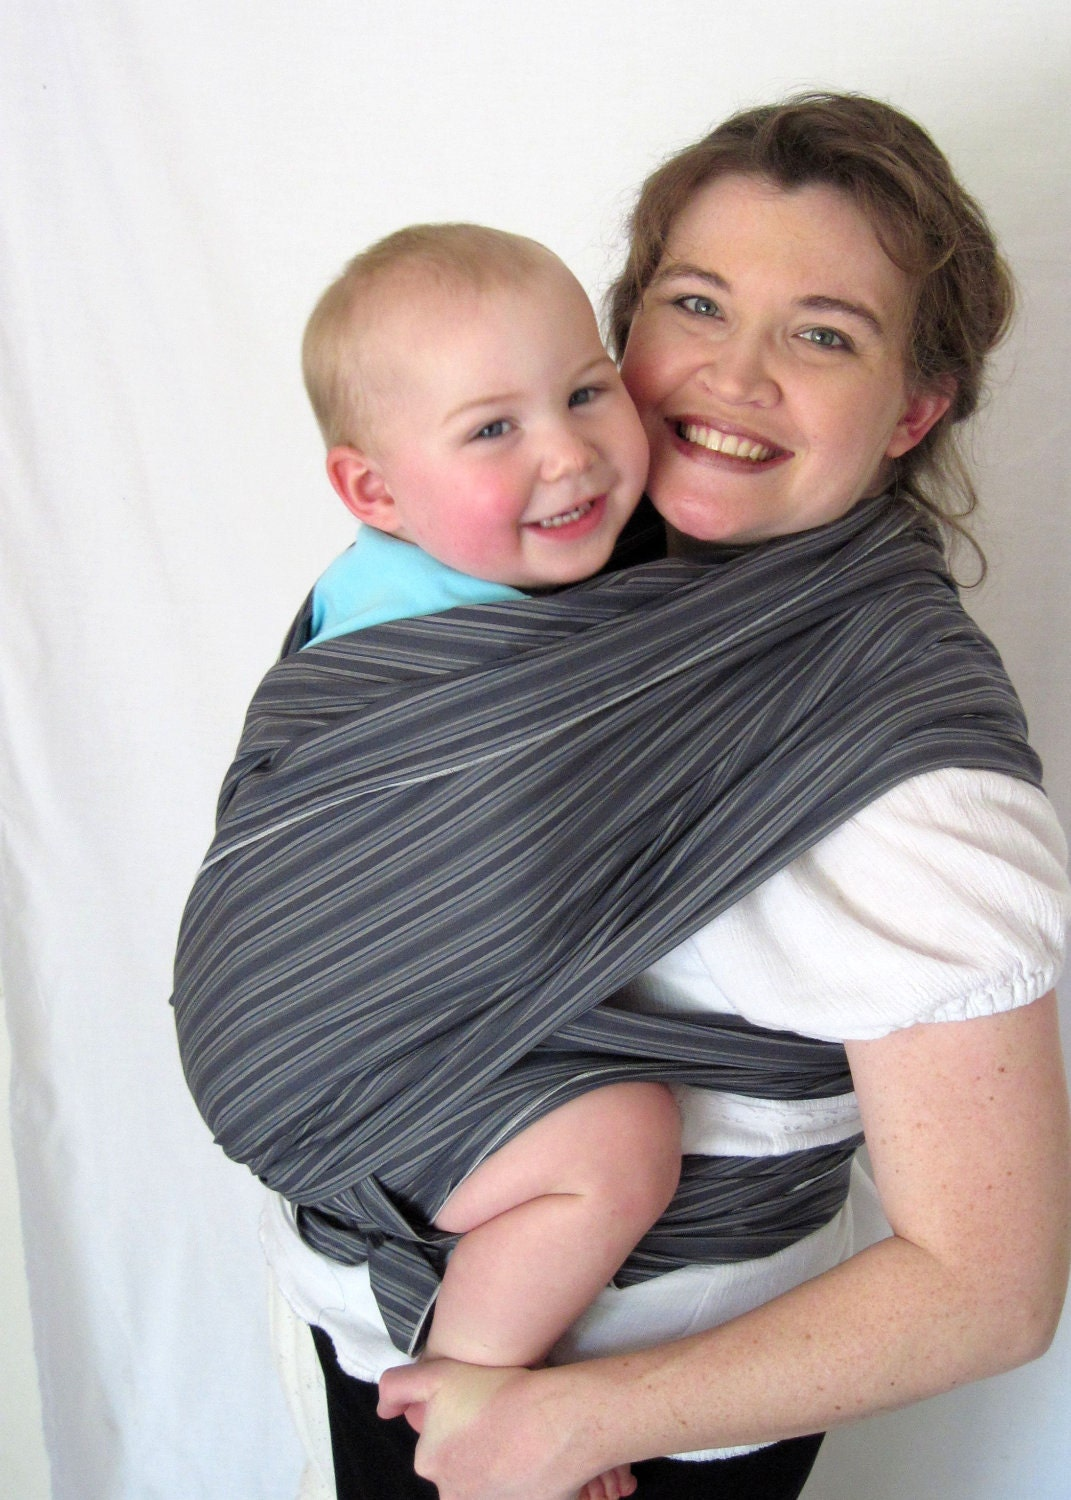 Woven Wrap Baby Sling Carrier - Smooth Charcoal Stripe Cotton - DVD included